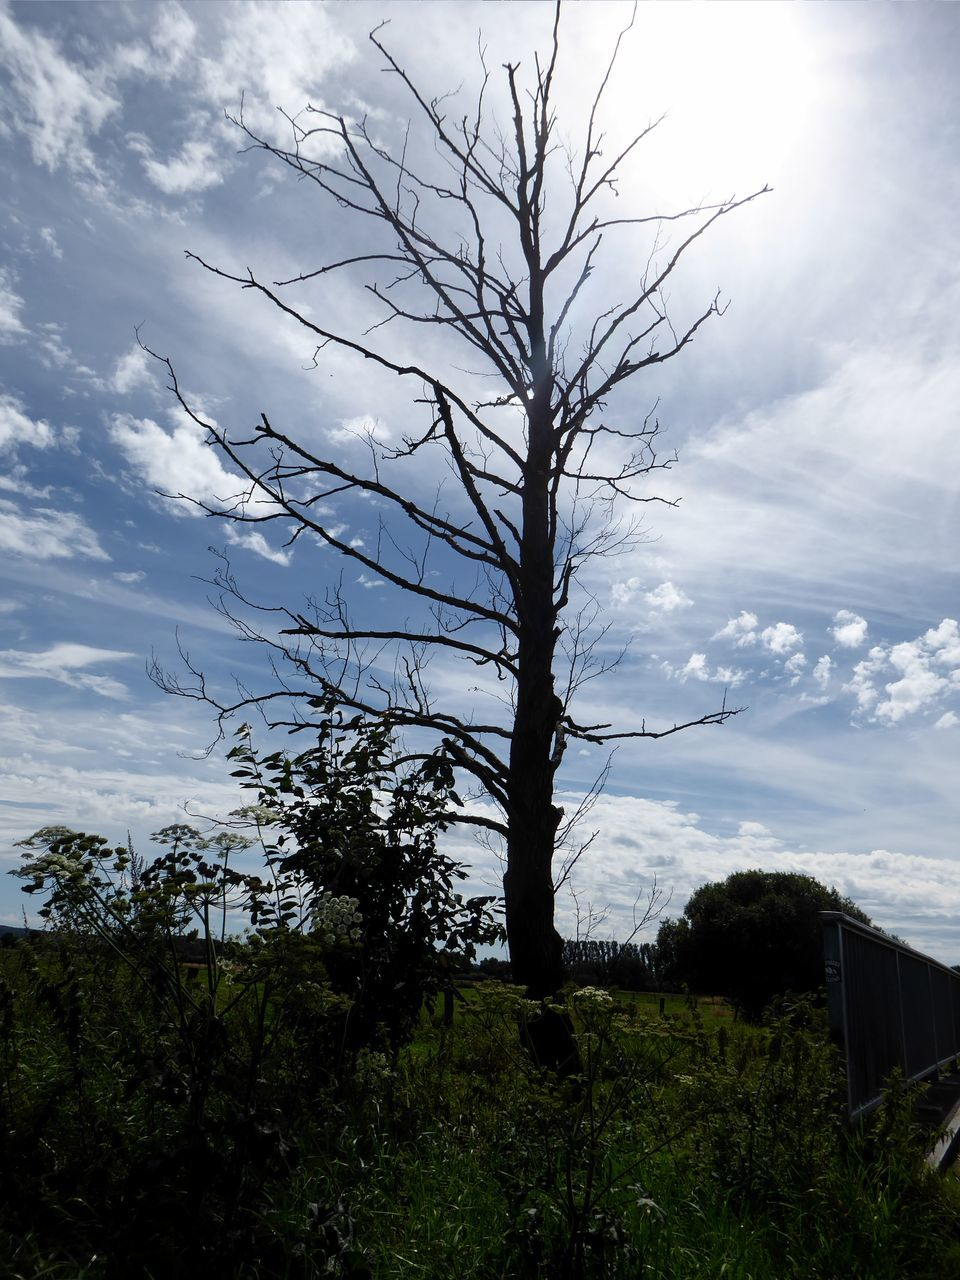 tree, sky, nature, no people, outdoors, day, beauty in nature, cloud - sky, landscape, tranquility, scenics, growth